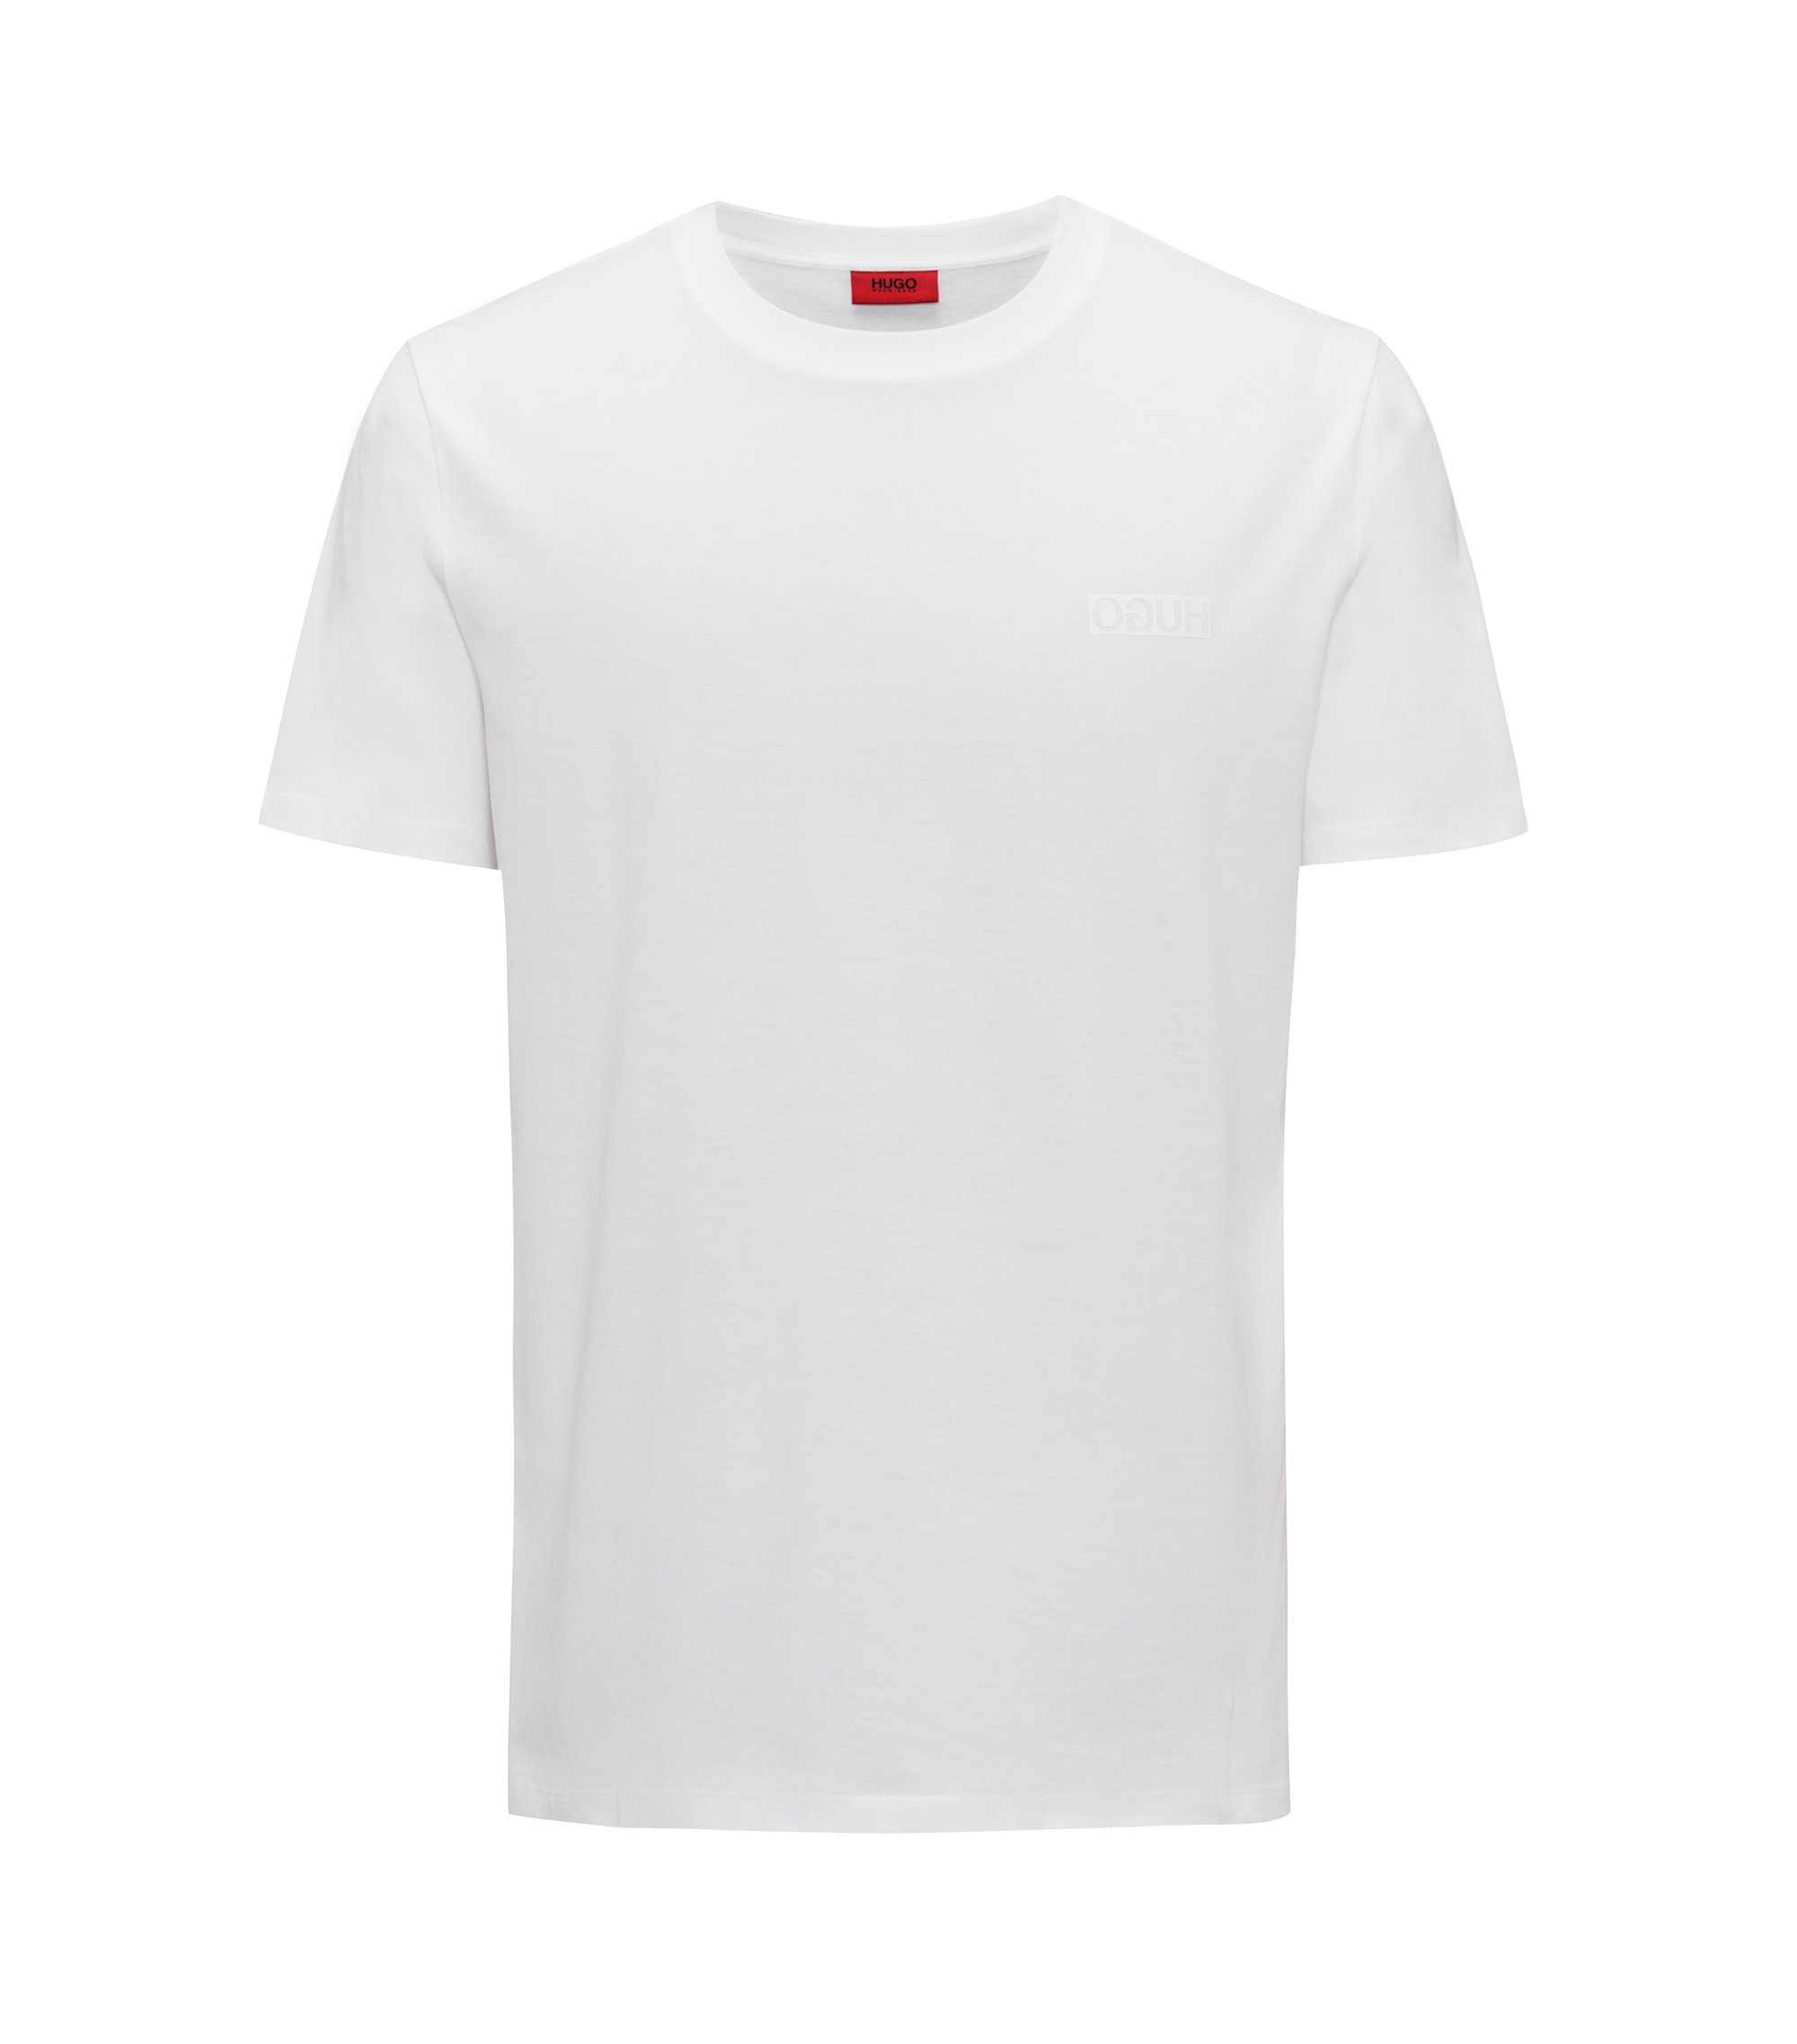 Oversized cotton jersey T-shirt with reverse logo, White